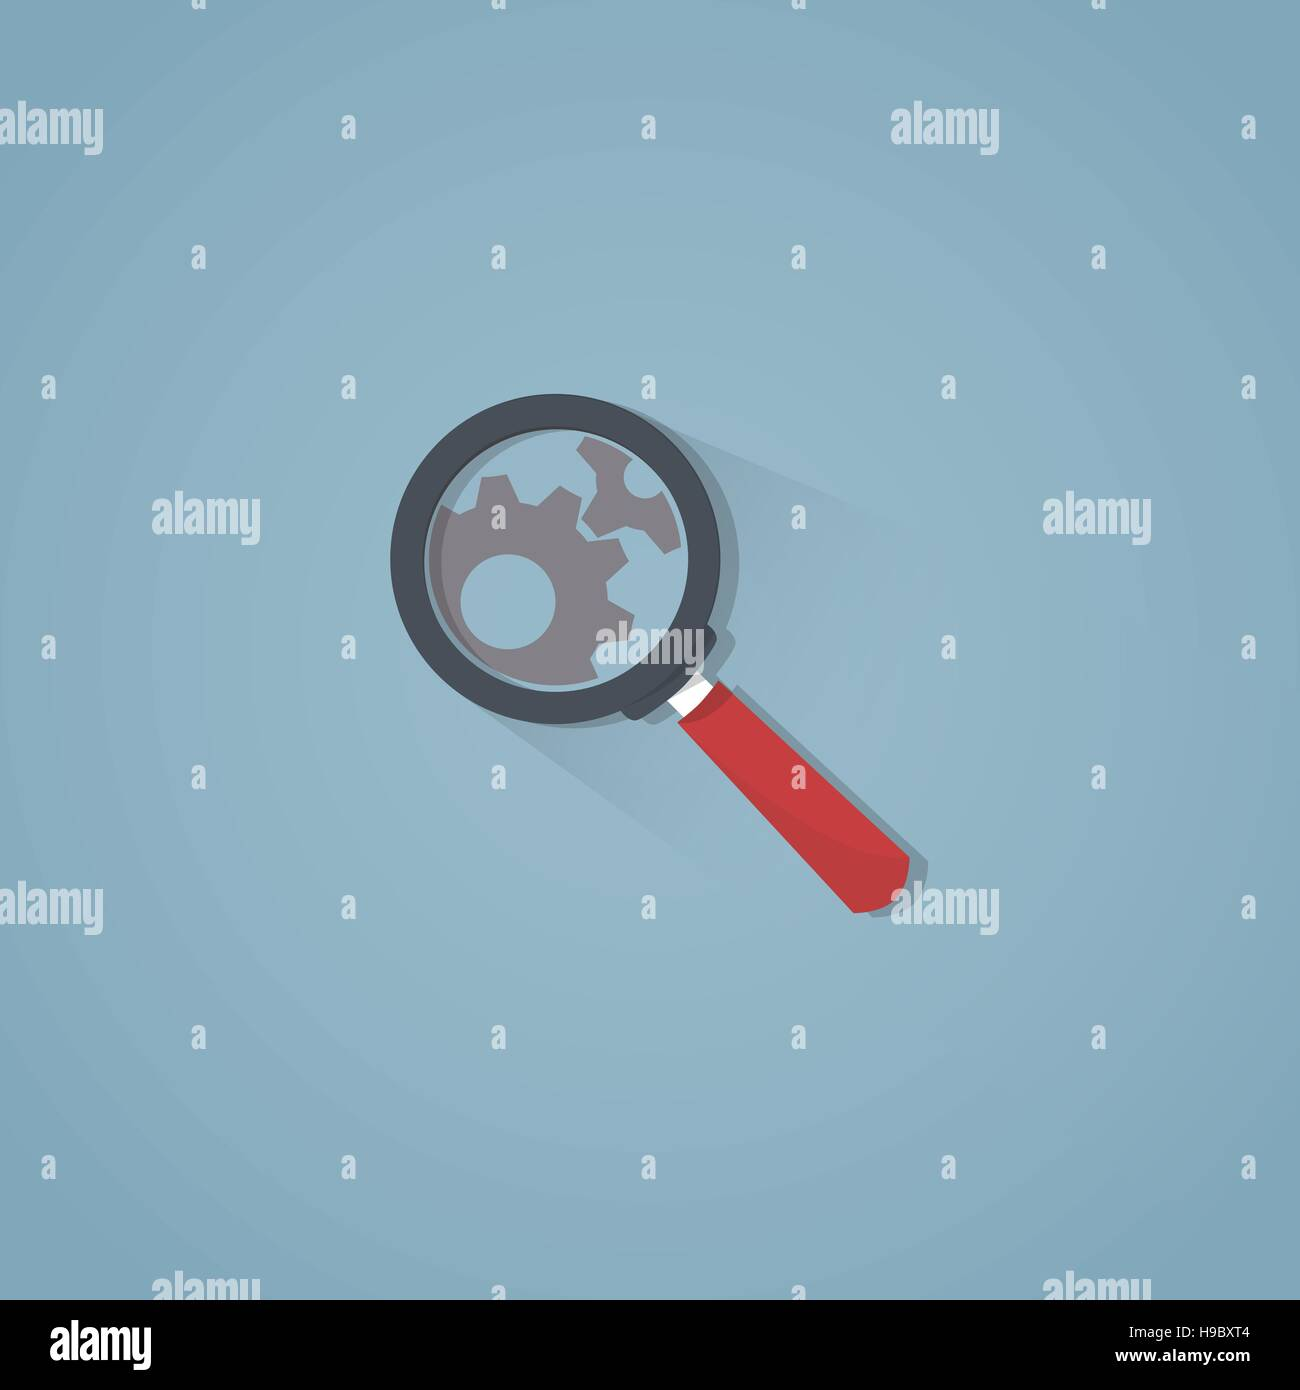 Flat illustration. Magnifying glass with hard flat shadows looking on working gears. - Stock Image